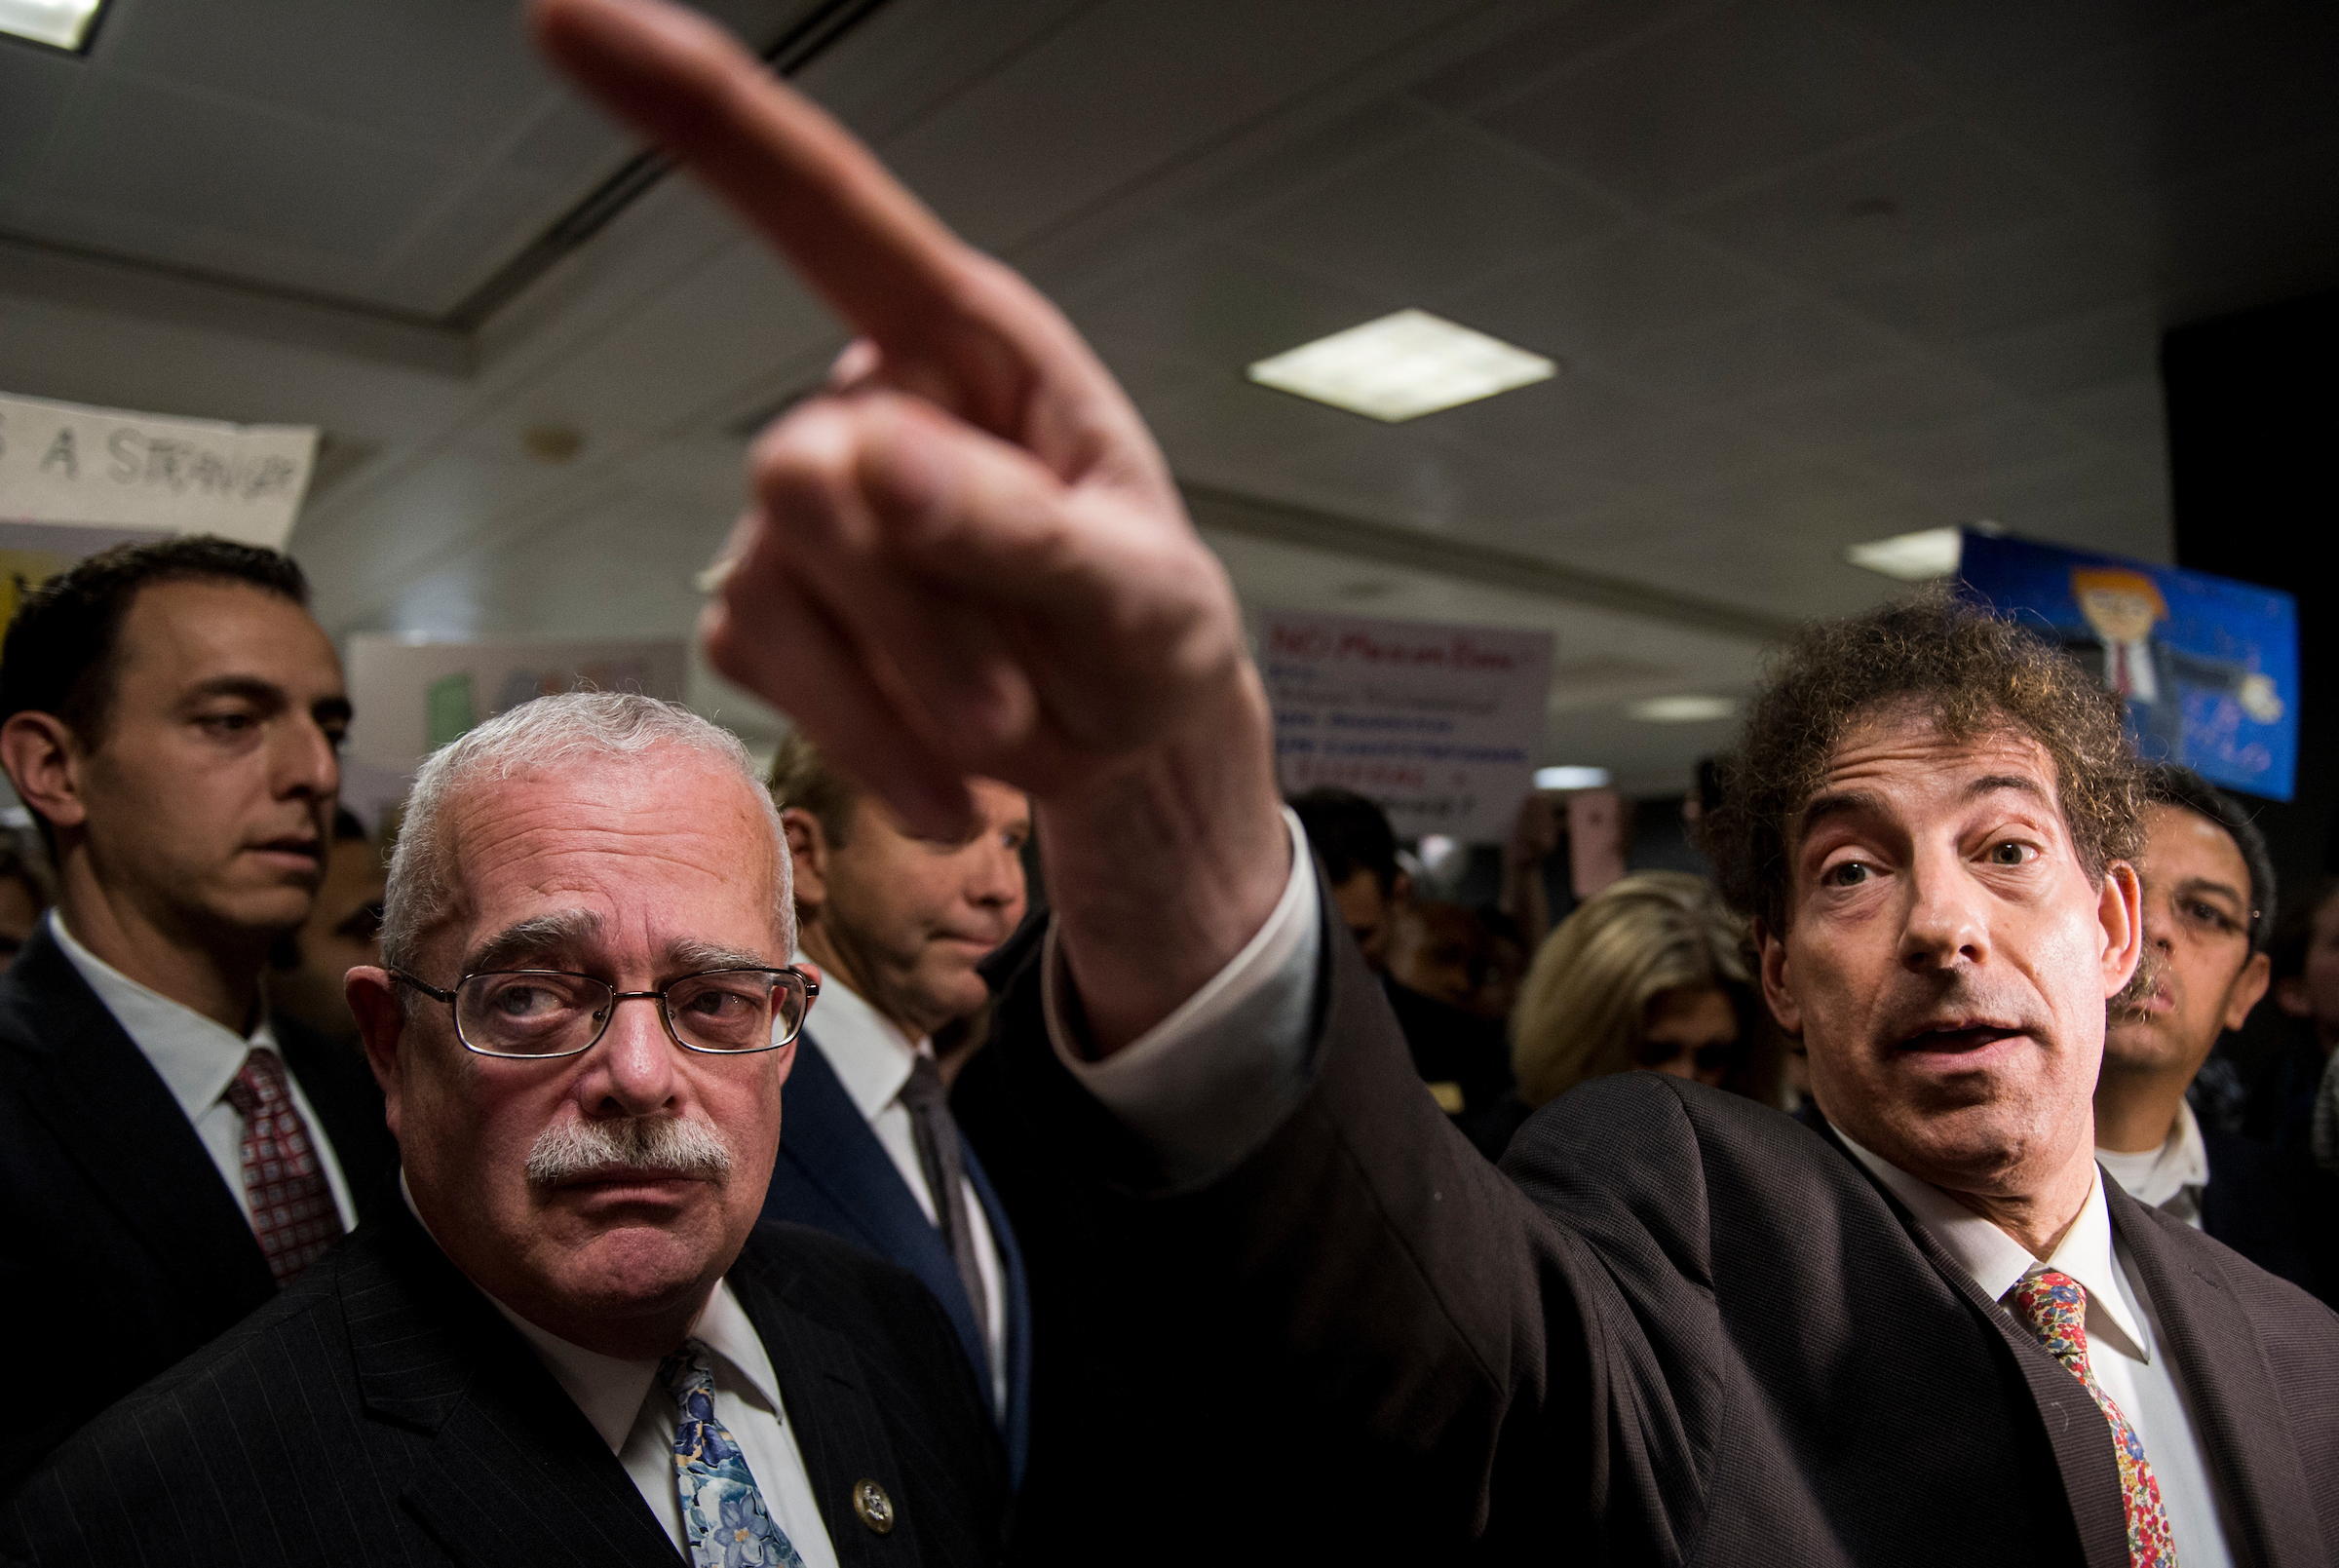 UNITED STATES - JANUARY 29: From left, Rep. Gerry Connolly, D-Va., and Rep. Jamie Raskin, D-Md., speak to the press and protesters about possible detention of travelers and legal access at Dulles International Airport in Virginia on Sunday, Jan. 29, 2017. Also participating were Rep. Don Beyer, D-Va., and Rep. John Delaney, D-Md. Protests erupted at airports around the country following President Trump's executive order restricting travel from several Islamic countries. (Photo By Bill Clark/CQ Roll Call)